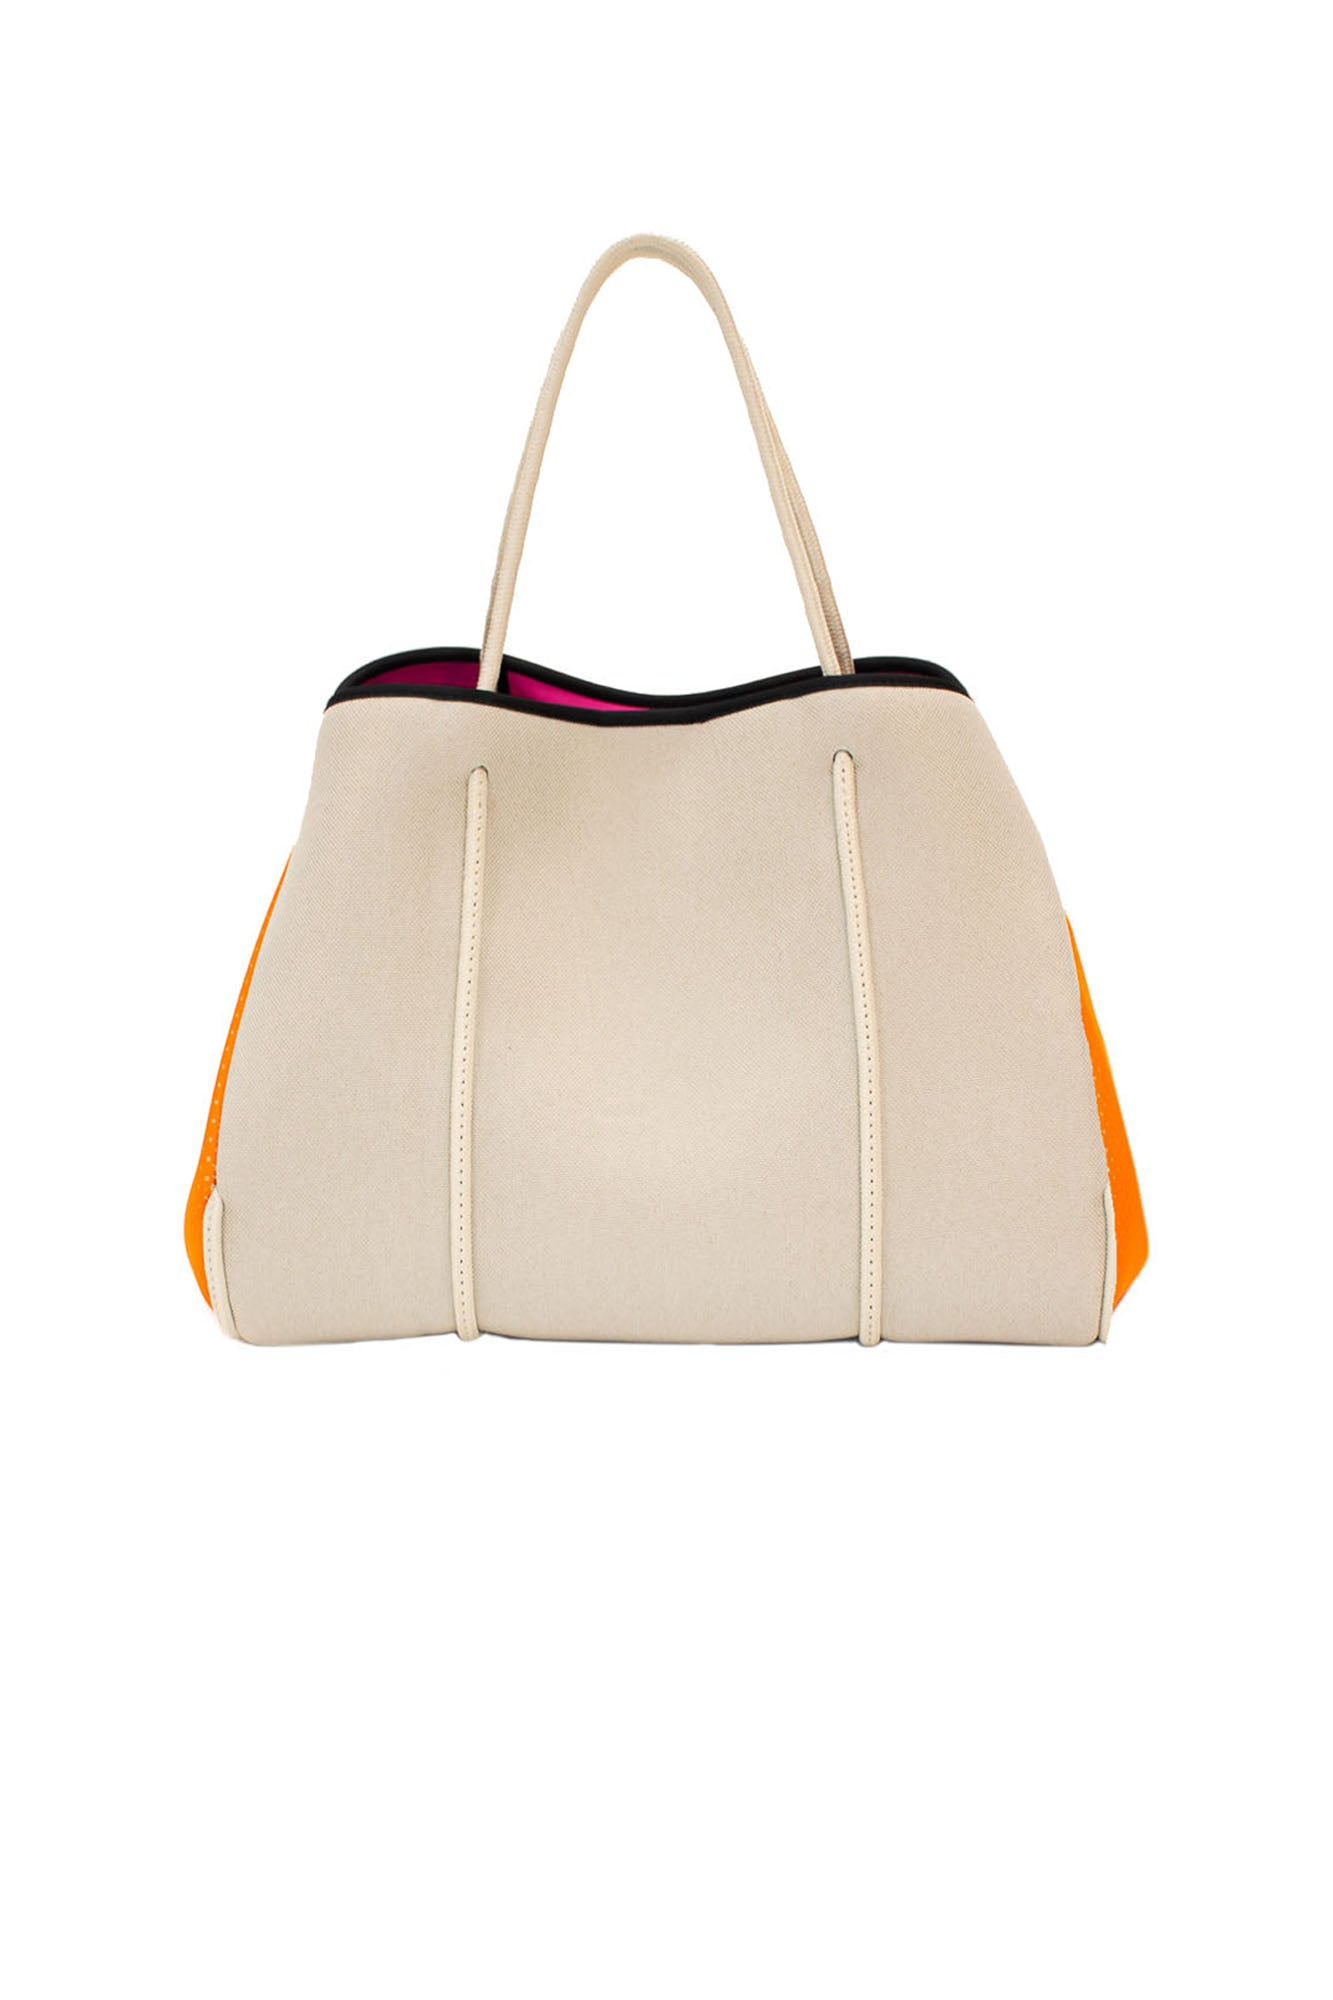 Greyson Capri Neoprene Tote Bag w/Zipper Wristlet Inside (Style CAPRI, Tan Canvas w/Orange Sides) by Haute Shore